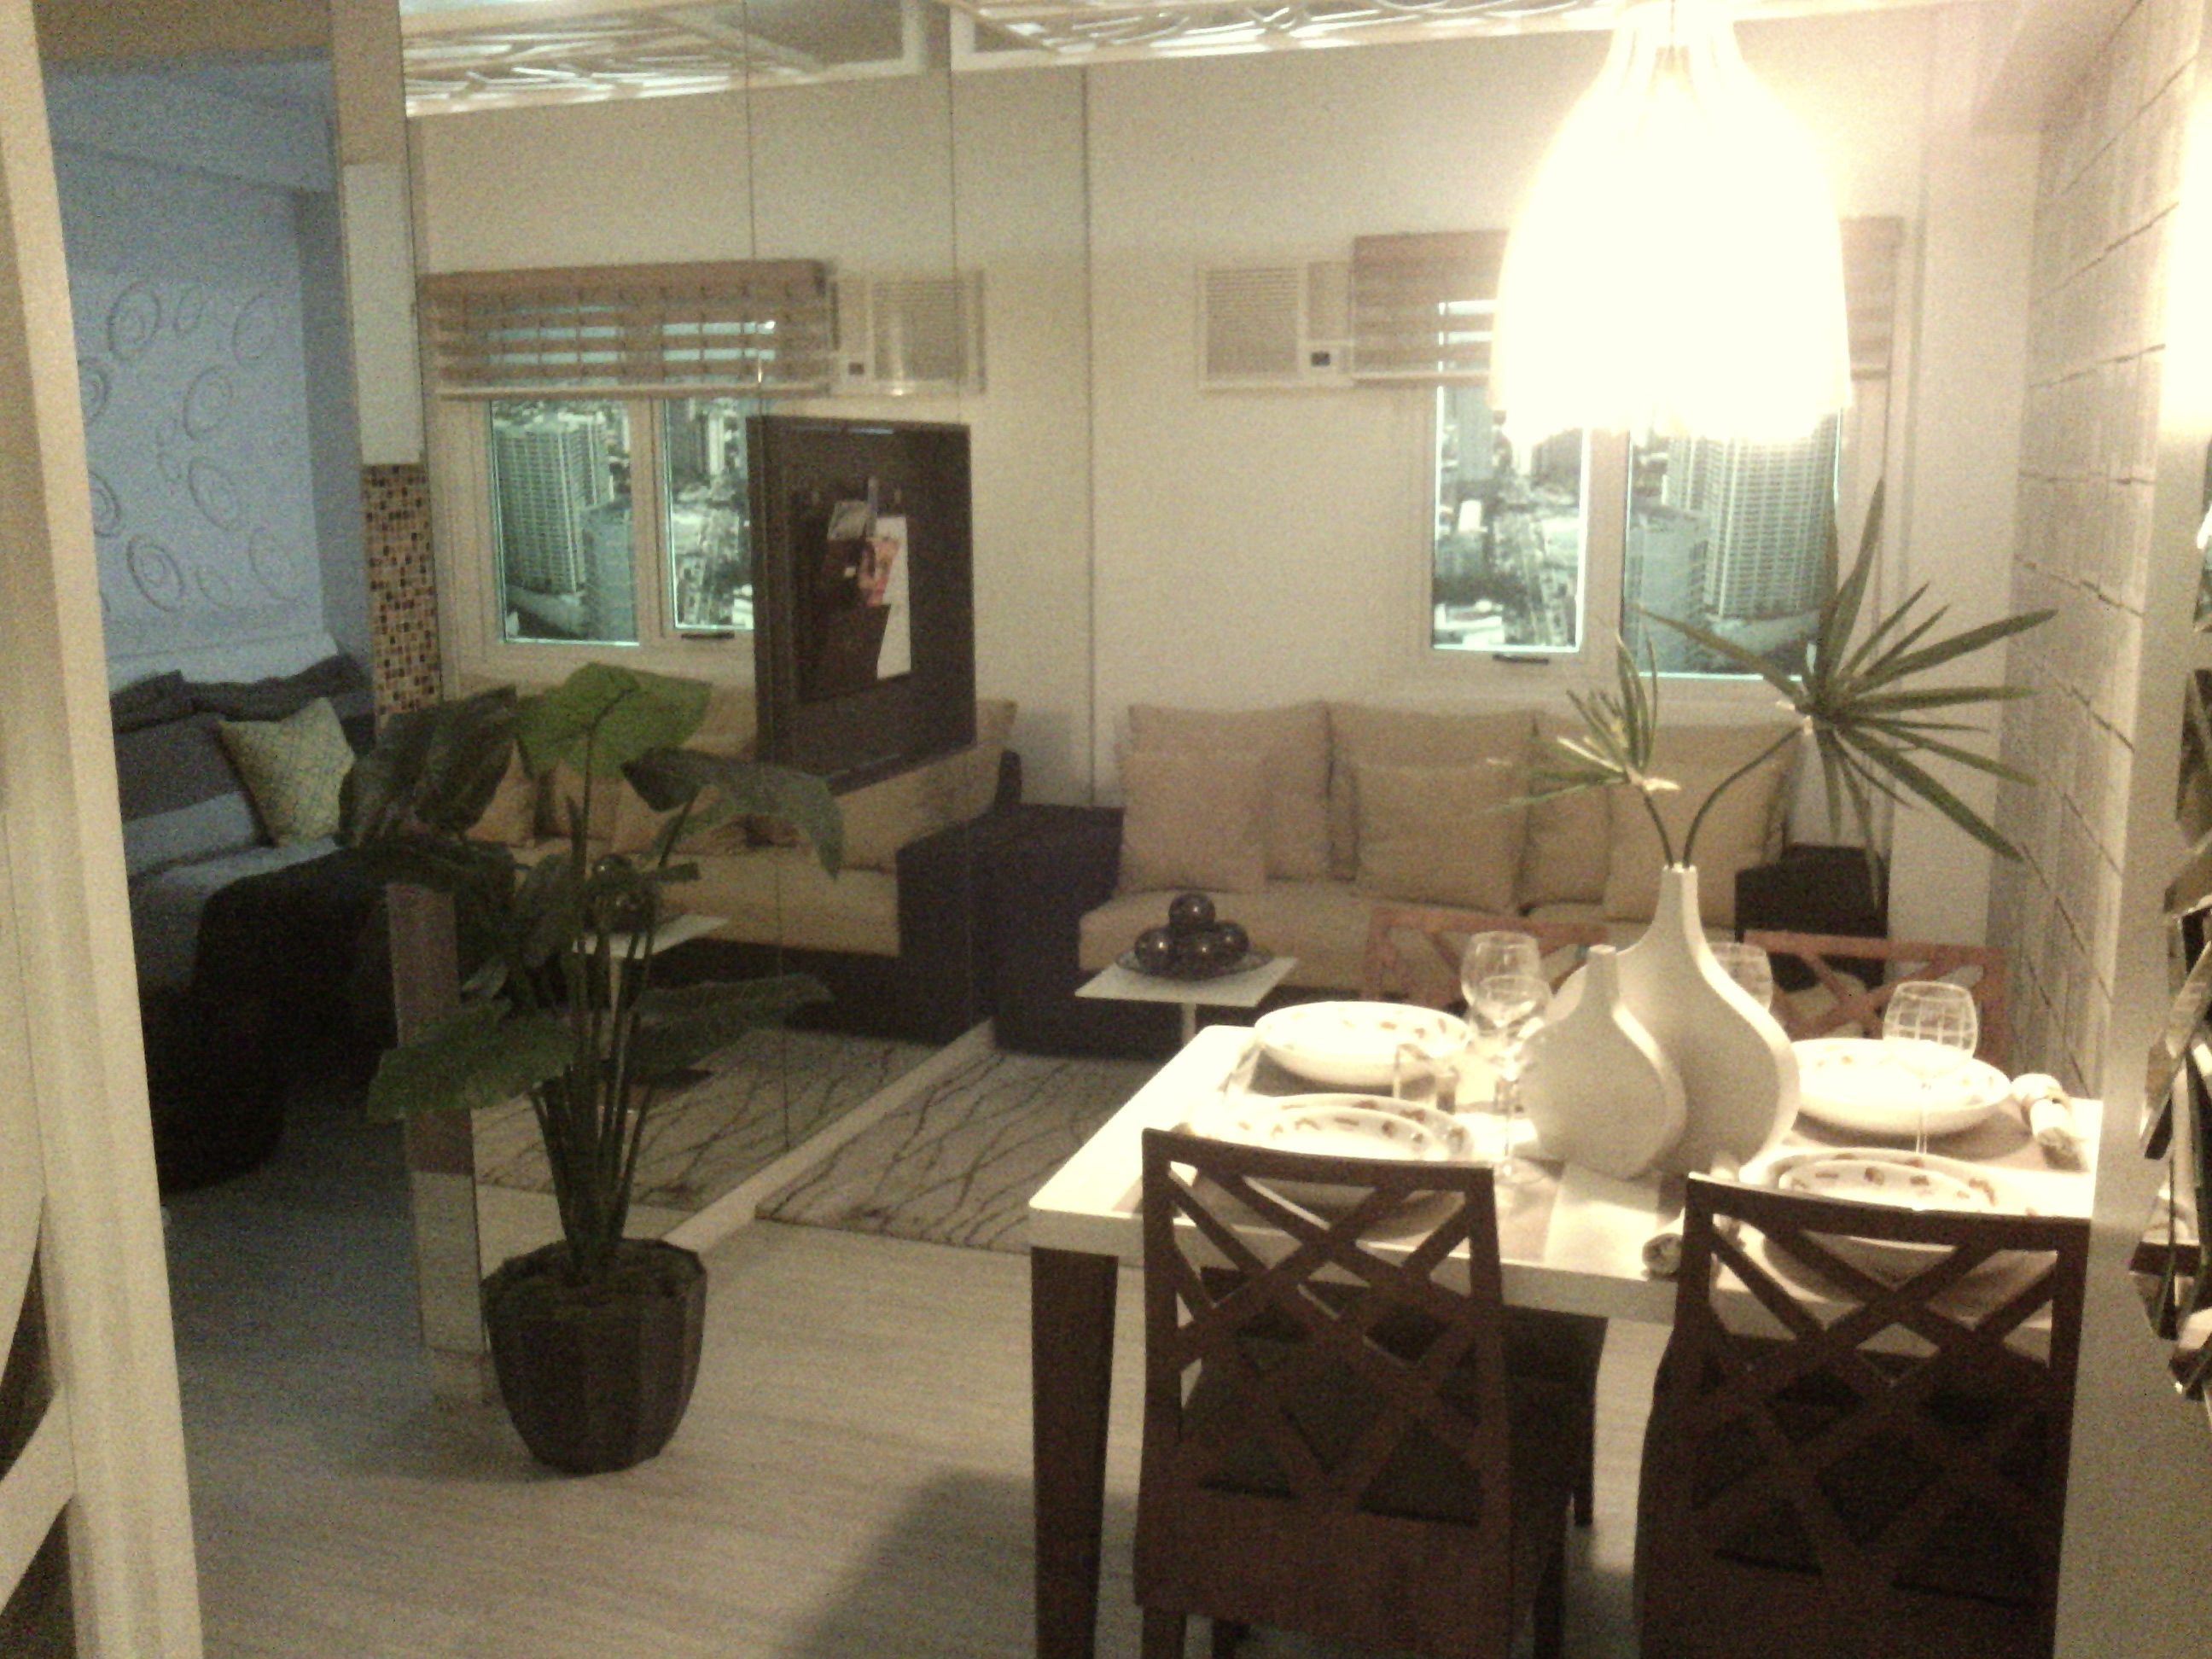 1 Bedroom Apartment And Condominium For Sale In Muntinlupa City